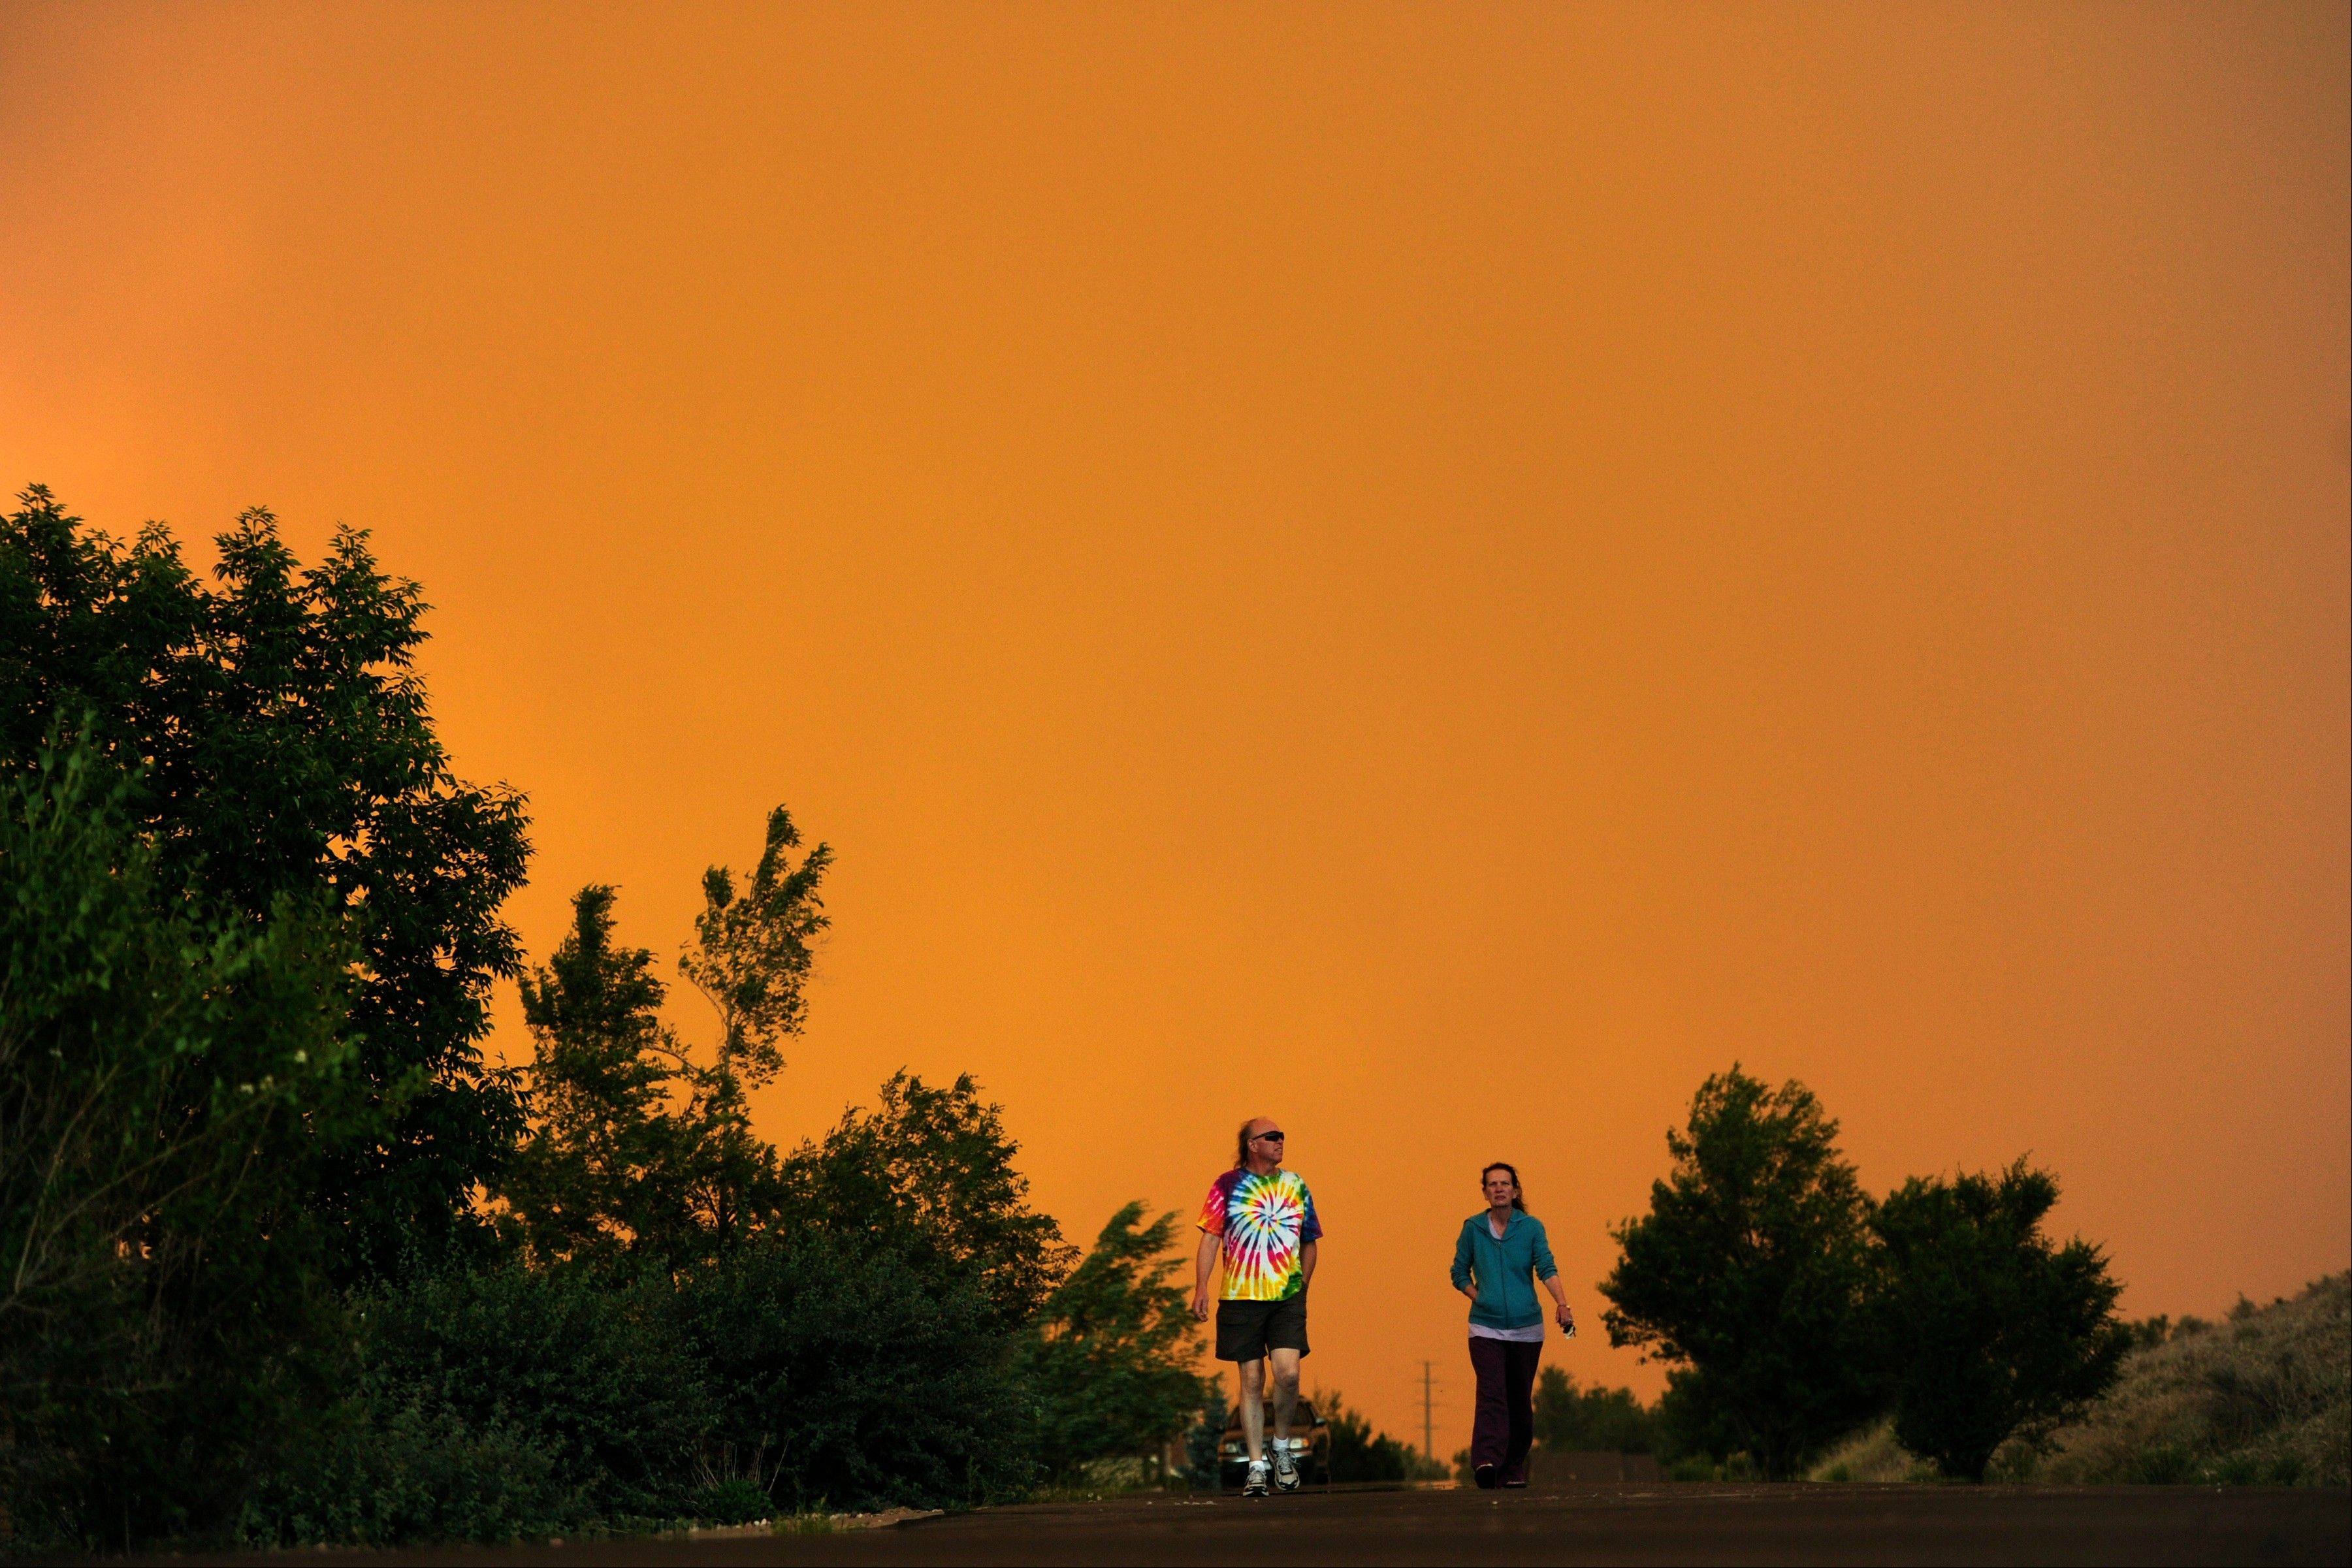 Diana and Donald Mangelsen walk near their home outside of LaPorte, Colo., as a wildfire burns in a mountainous area about 15 miles west of Fort Collins, Colo., on Sunday, June 10, 2012. Firefighters on Sunday were fighting wildfires that have spread quickly in parched forests in Colorado and New Mexico, forcing hundreds of people from their homes and the evacuation of wolves from a sanctuary. The Colorado fire grew to 22 square miles within about a day of being reported and has destroyed or damaged 18 structures.